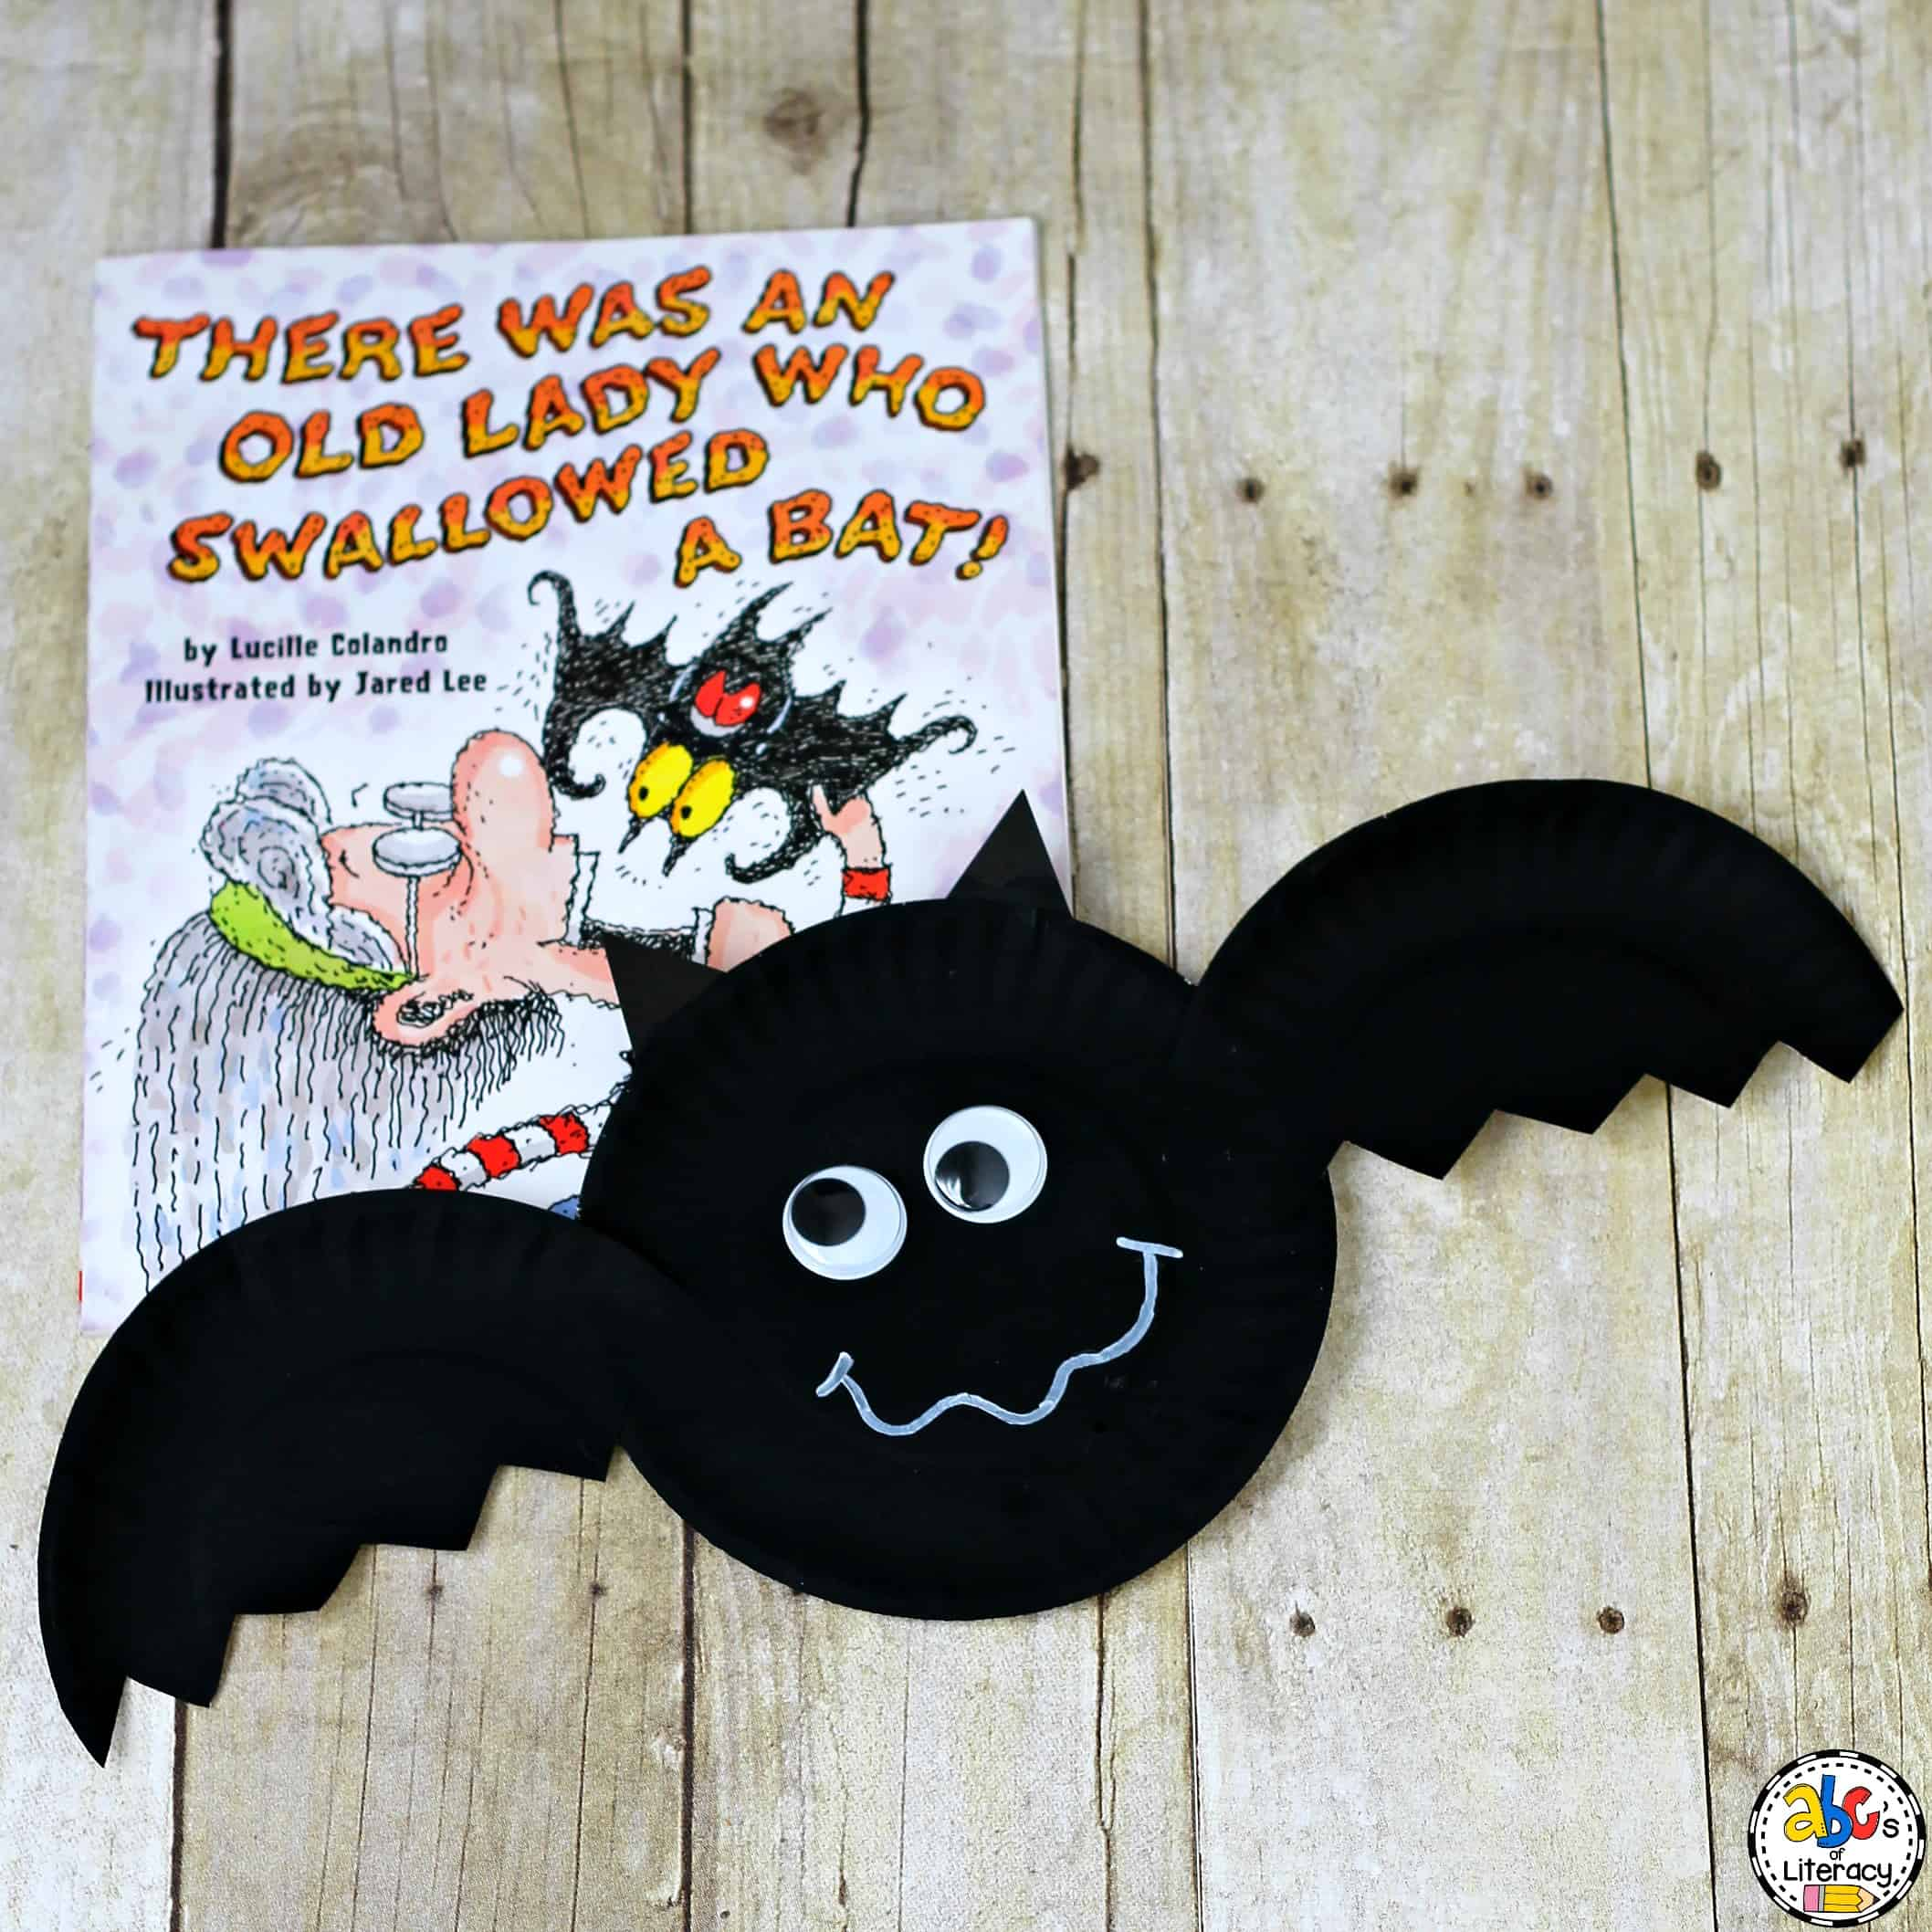 Your kids will enjoy creating this Paper Plate Bat for a Halloween craft. Or, add this bat craft to your unit on nocturnal animals for some extra fun.